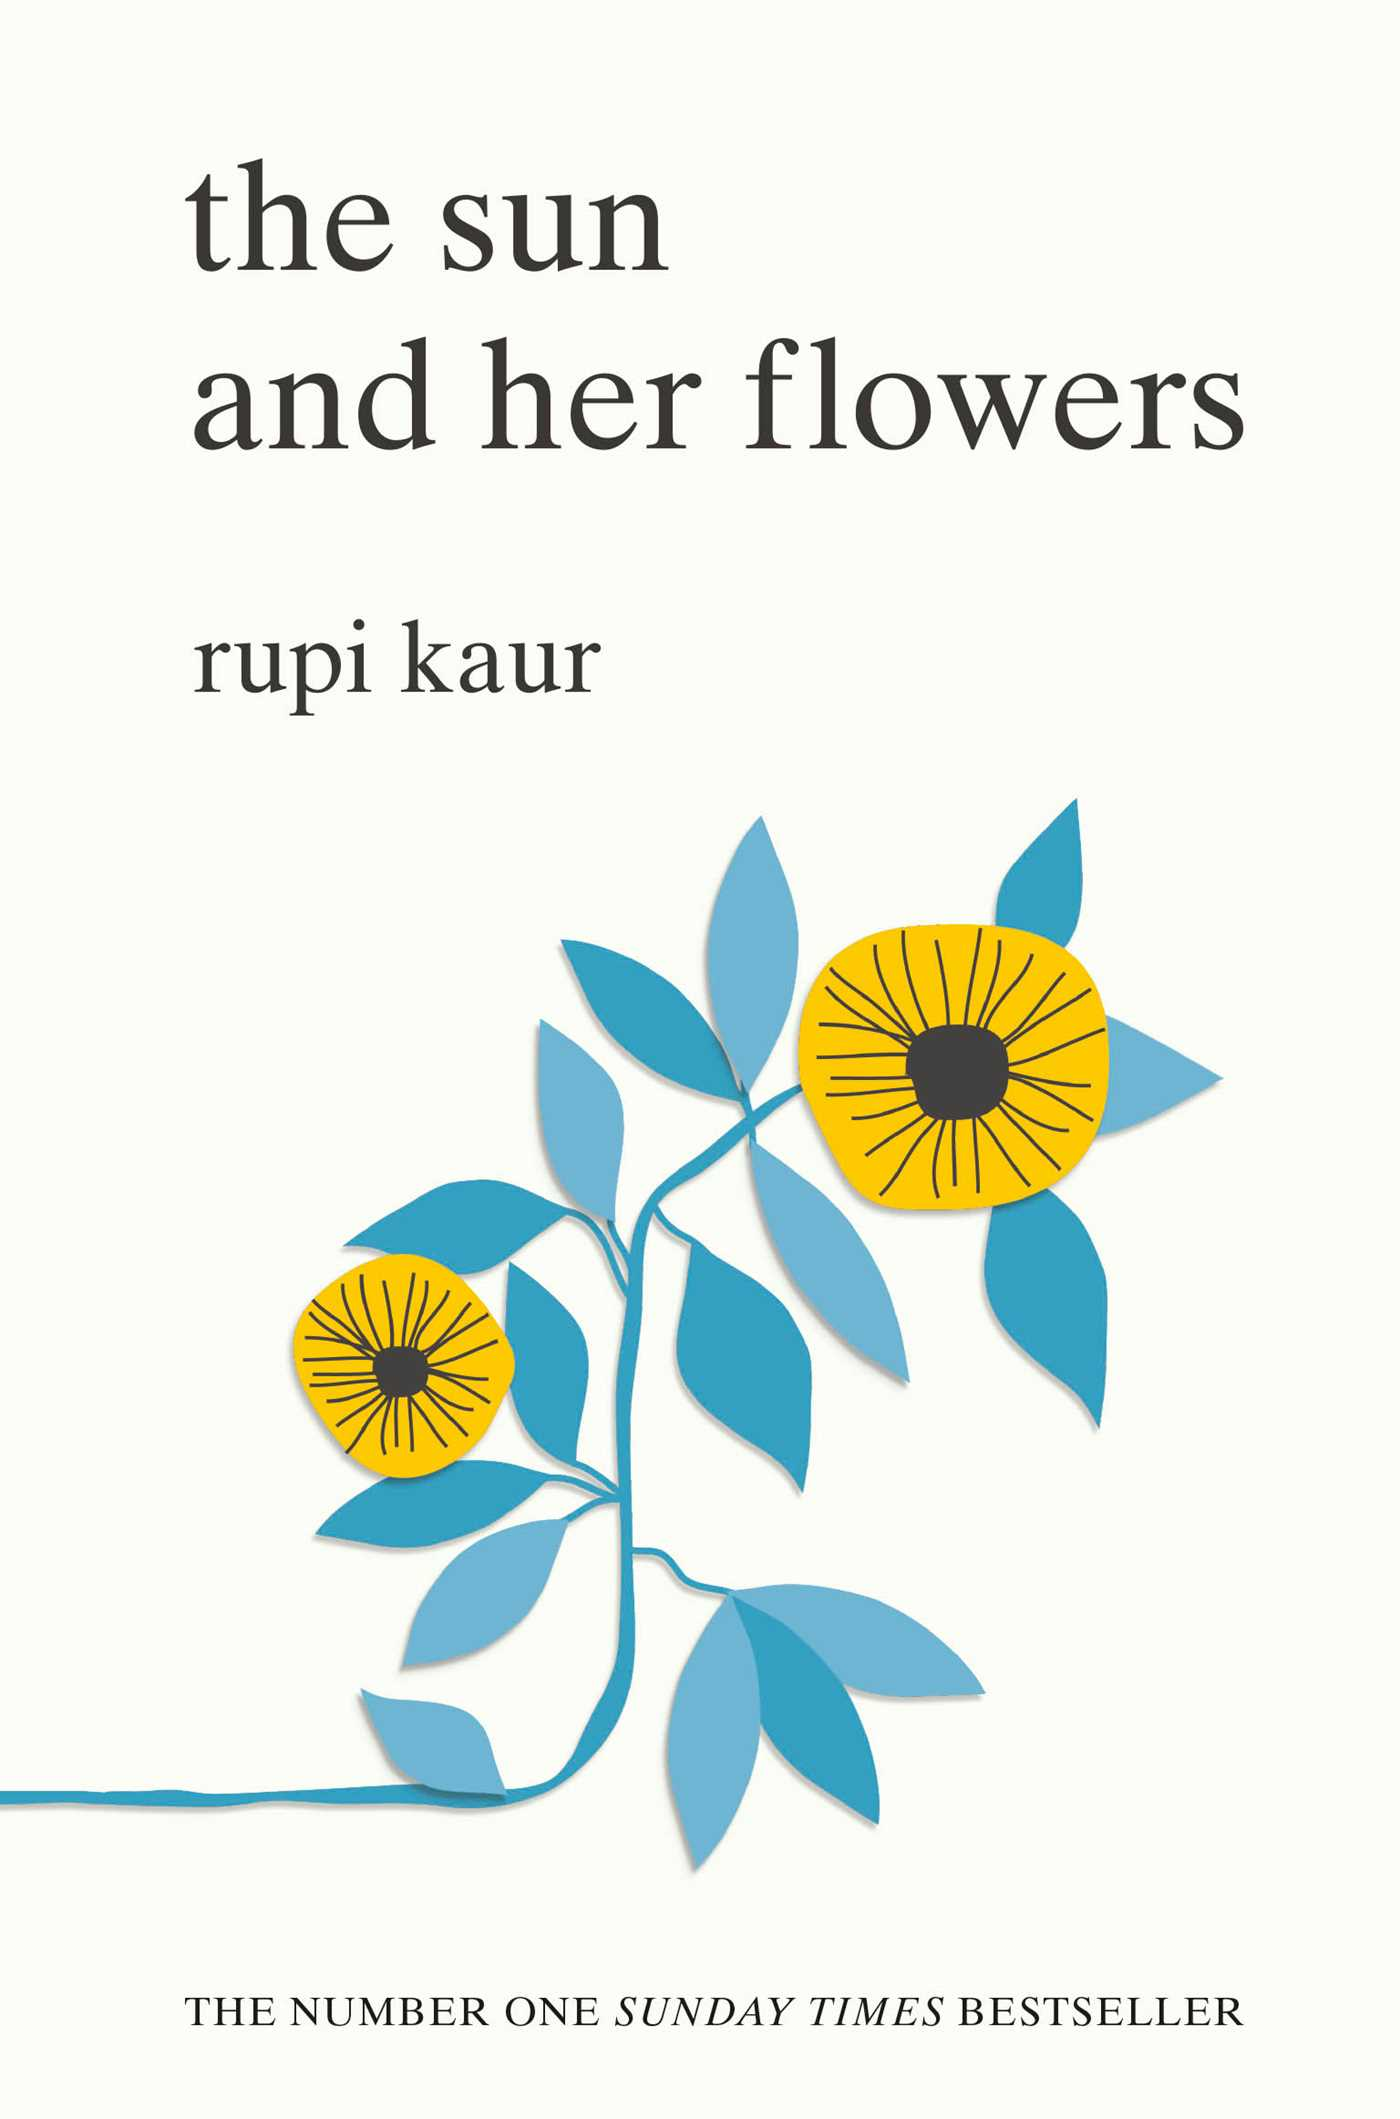 the-sun-and-her-flowers-9781471165825_hr.jpg